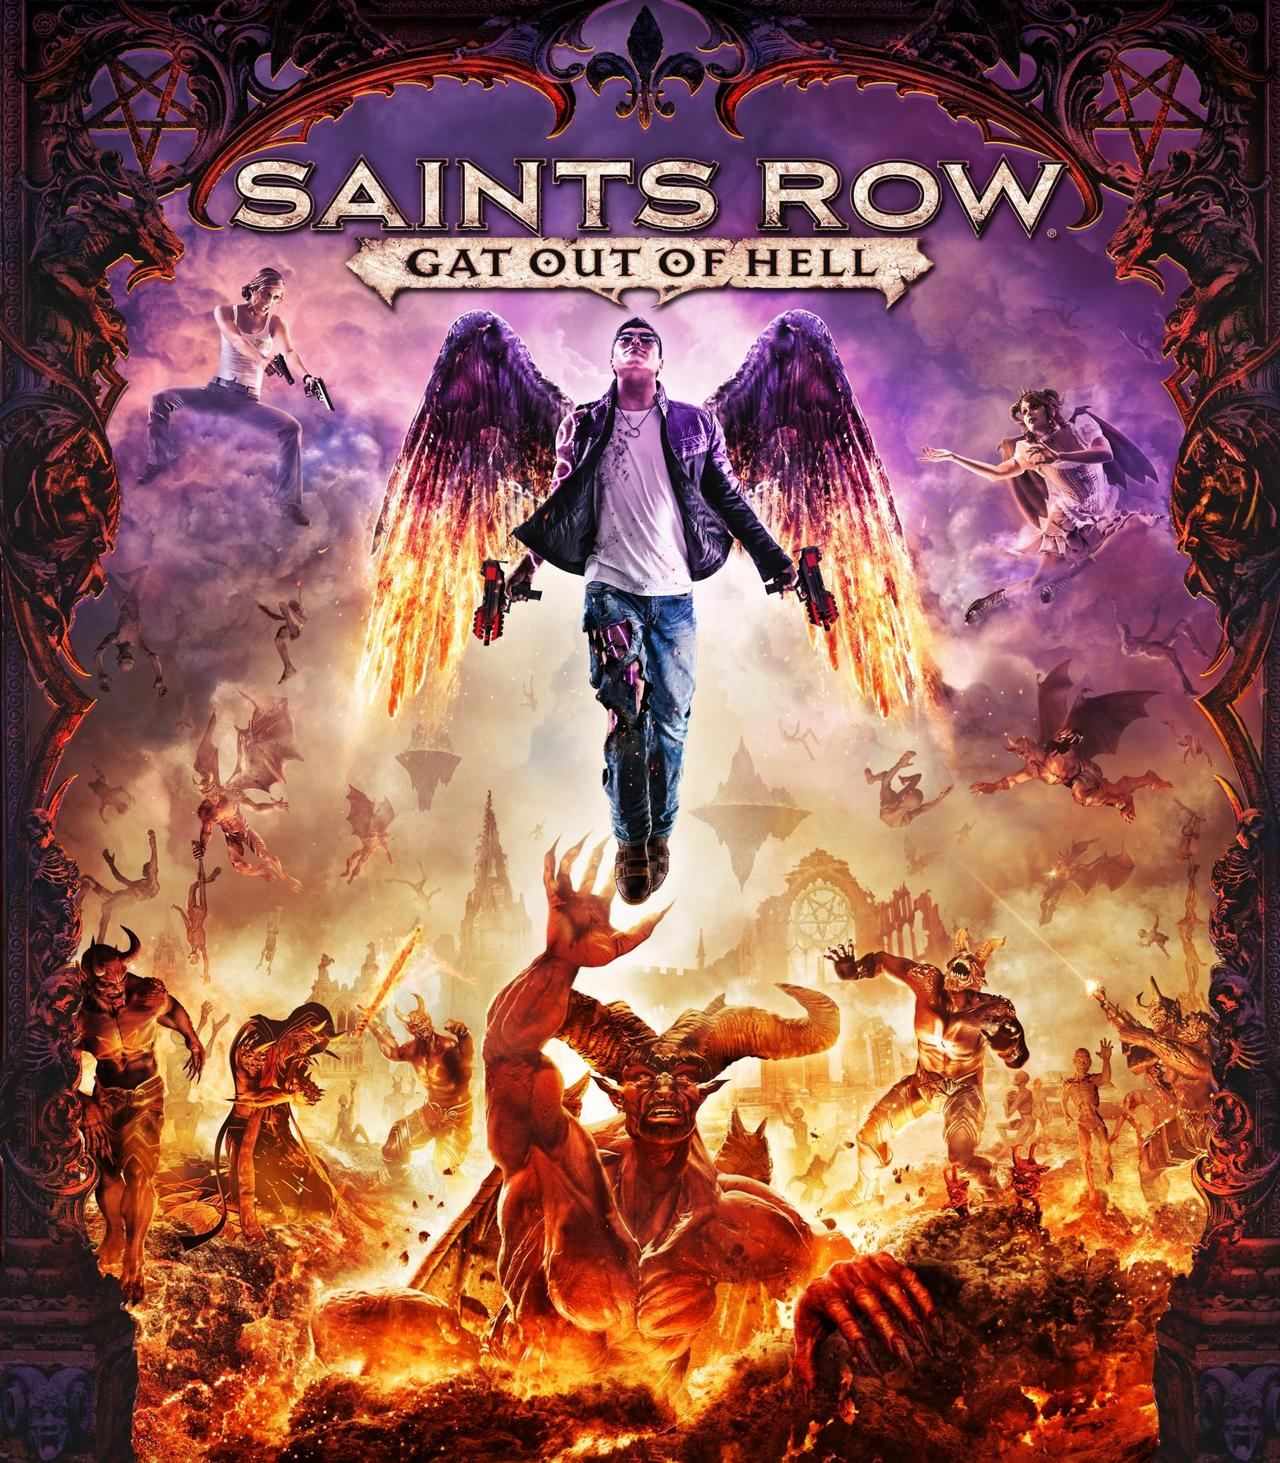 Playstation 4 / XboxOne Saints-row-gat-out-of-hell-pc-1409400042-004